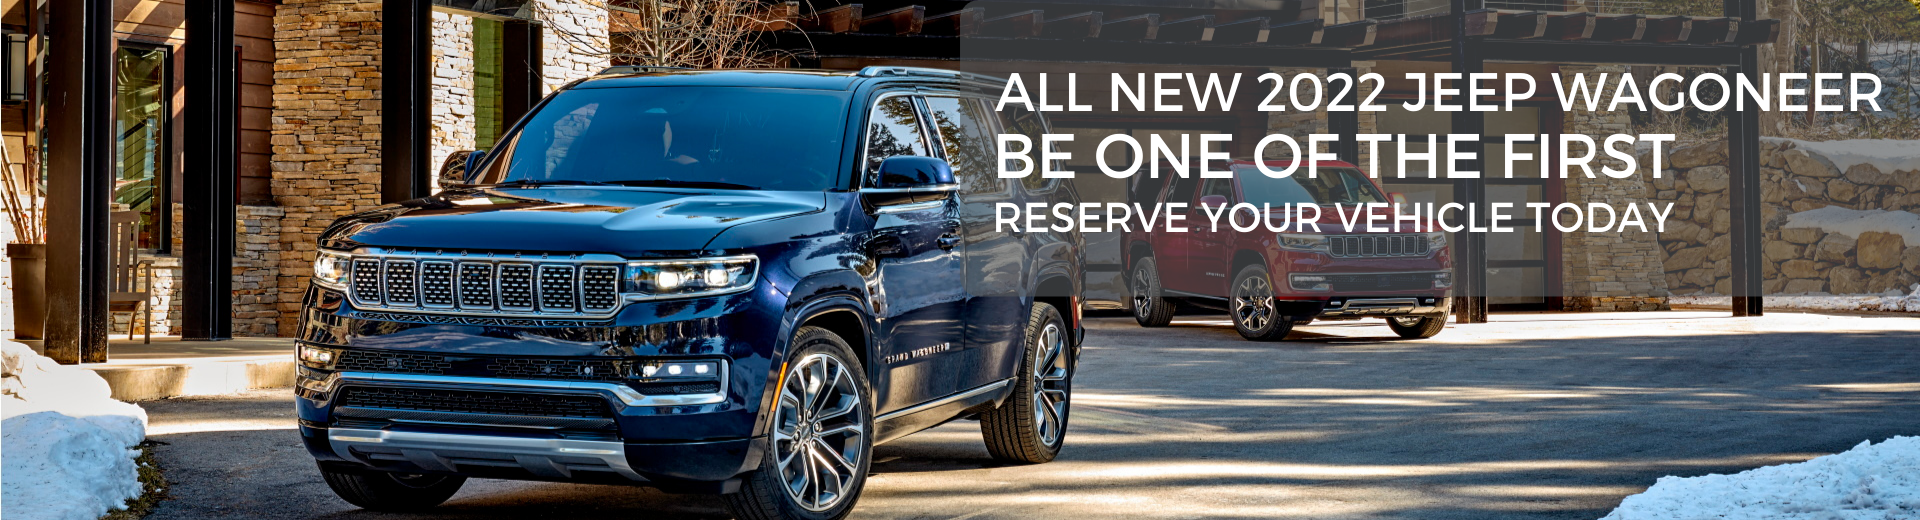 Pre-Order the All New 2022 Jeep Grand Wagoneer